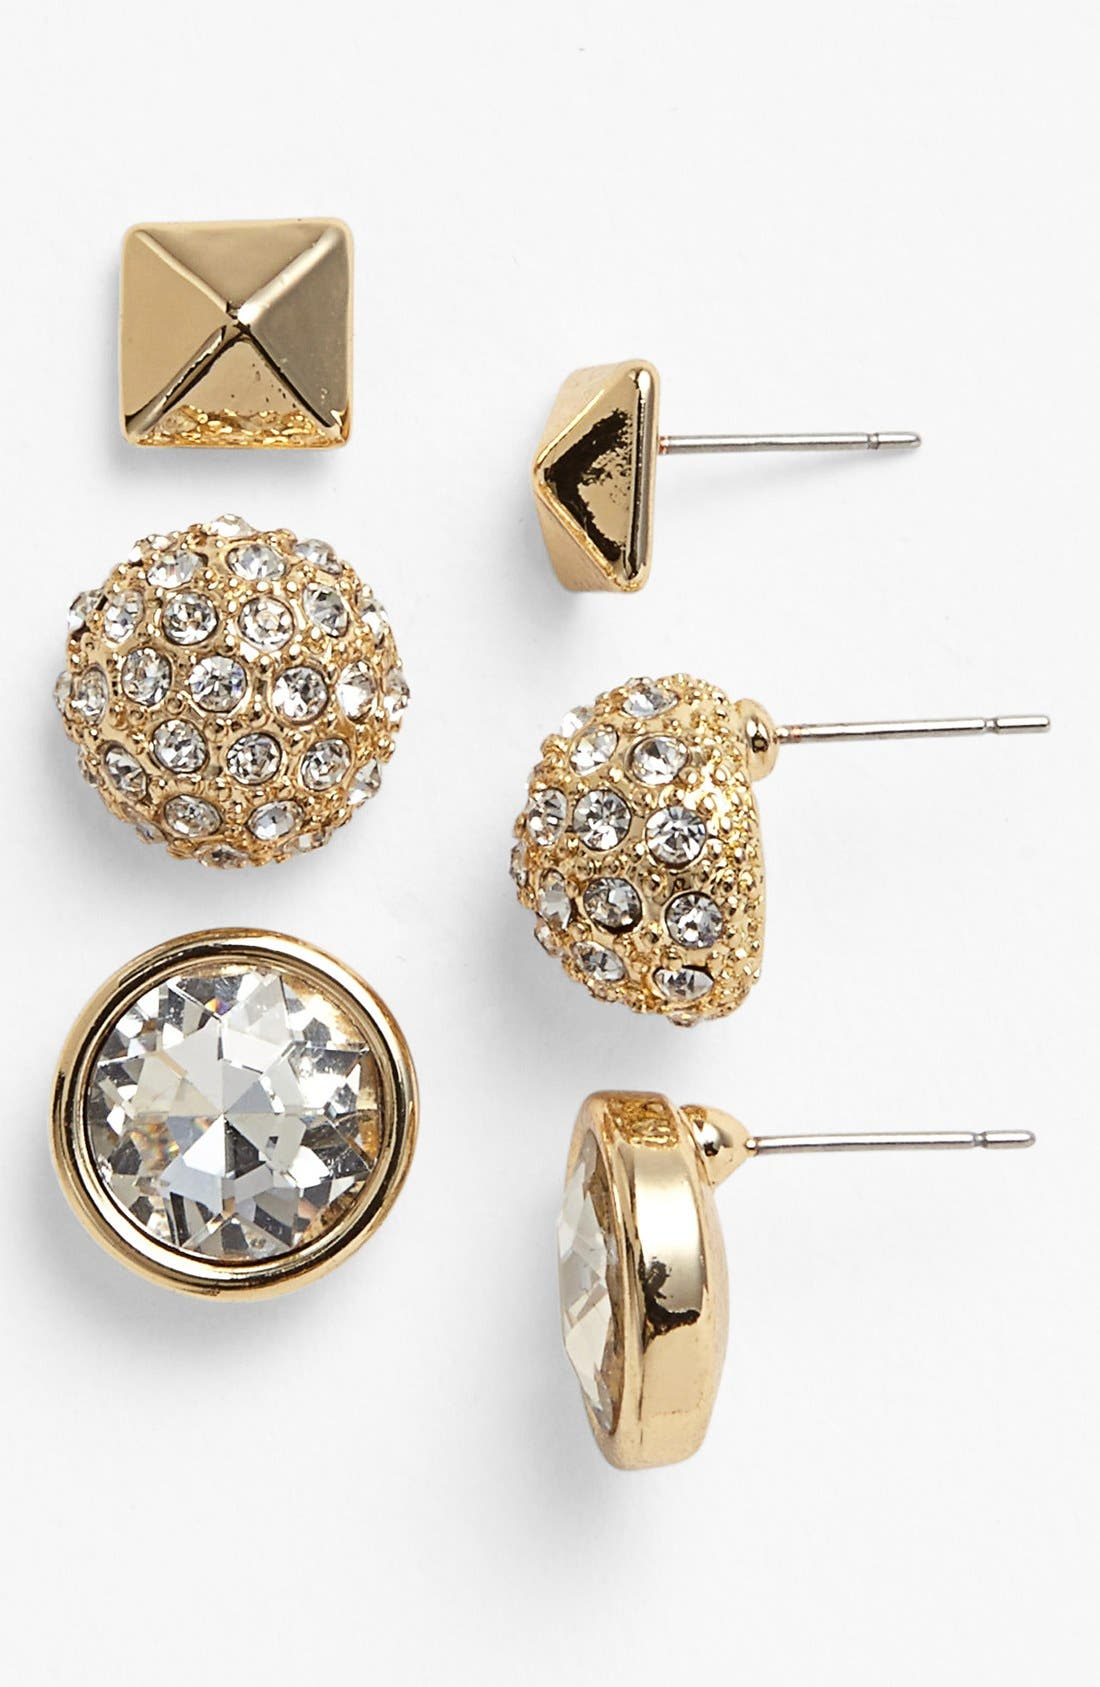 Main Image - Lydell NYC 'Preppy' Boxed Stud Earrings (Set of 3)